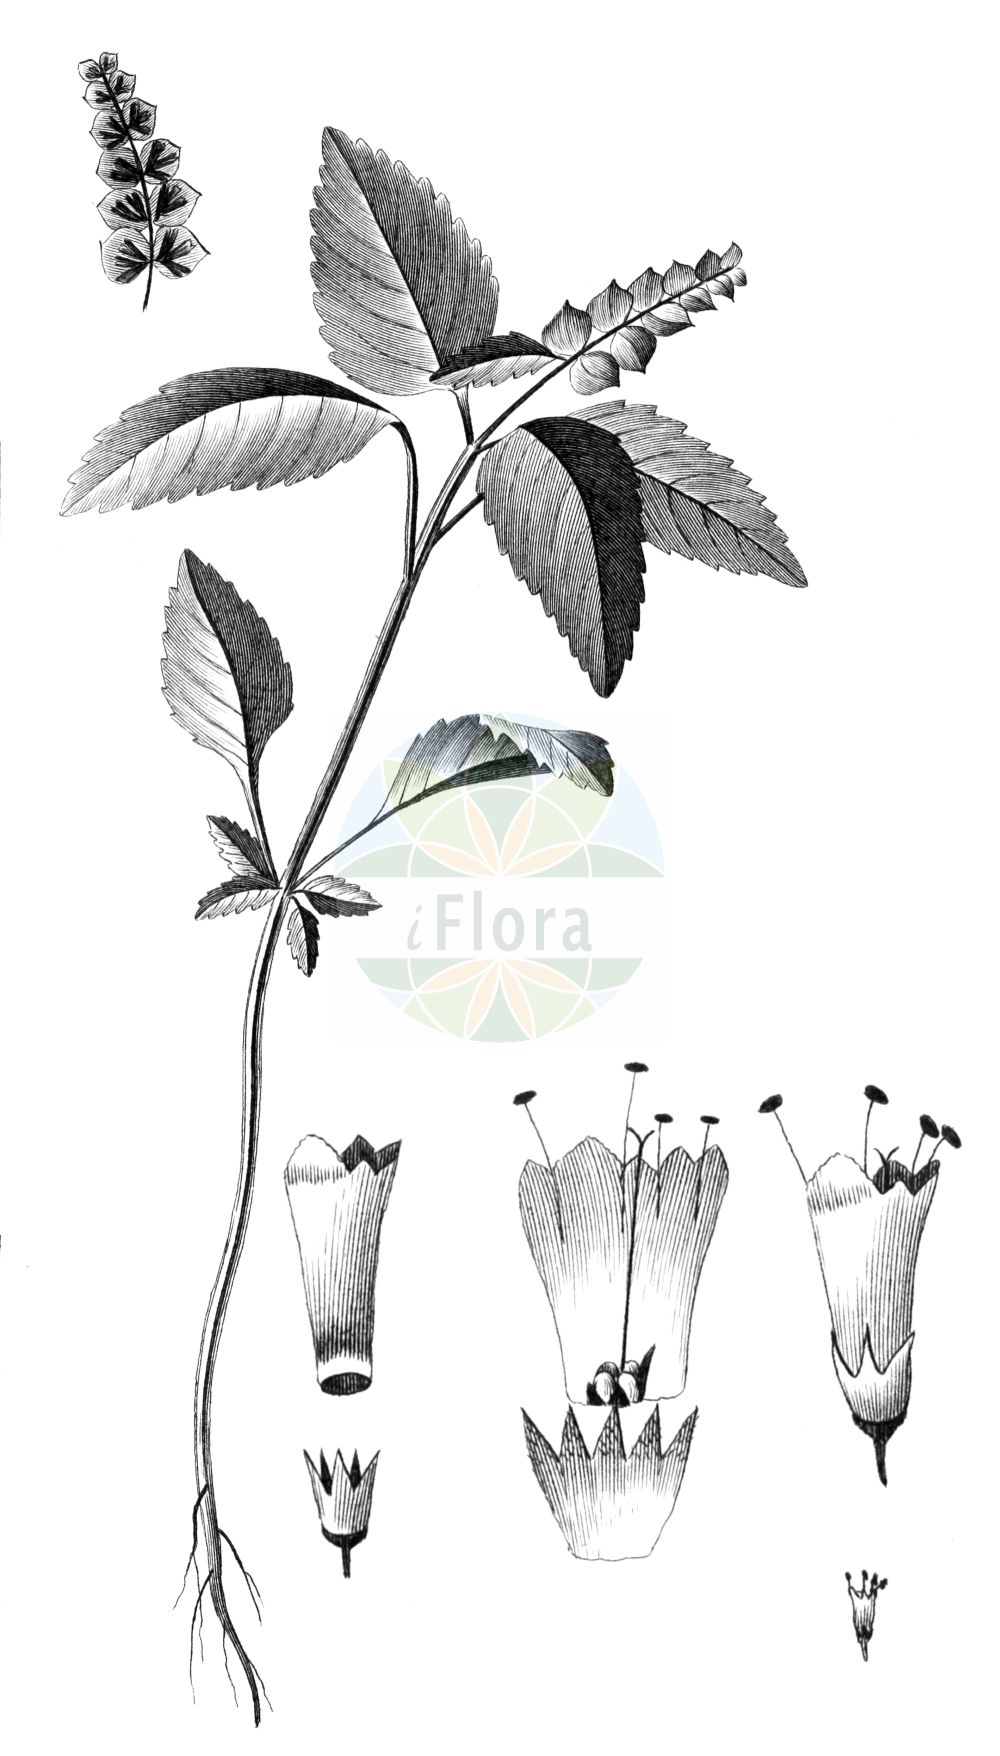 Historische Abbildung von Elsholtzia ciliata. Das Bild zeigt Blatt, Bluete, Frucht und Same. ---- Historical Drawing of Elsholtzia ciliata.The image is showing leaf, flower, fruit and seed.(Elsholtzia ciliata,Elsholtzia ciliata,Elsholtzia cristata,Elsholtzia formosana,Elsholtzia interrupta,Elsholtzia minima,Elsholtzia patrinii,Elsholtzia pseudocristata,Hyssopus bracteatus,Hyssopus ocymifolius,Mentha baikalensis,Mentha cristata,Mentha ovata,Mentha patrinii,Mentha perilloides,Perilla polystachya,Sideritis ciliata,Elsholtzia,Lamiaceae,Lippenbluetengewaechse,Lippenbluetler,Nettle family,Blatt,Bluete,Frucht,Same,leaf,flower,fruit,seed,Cavanilles (1745-1804))